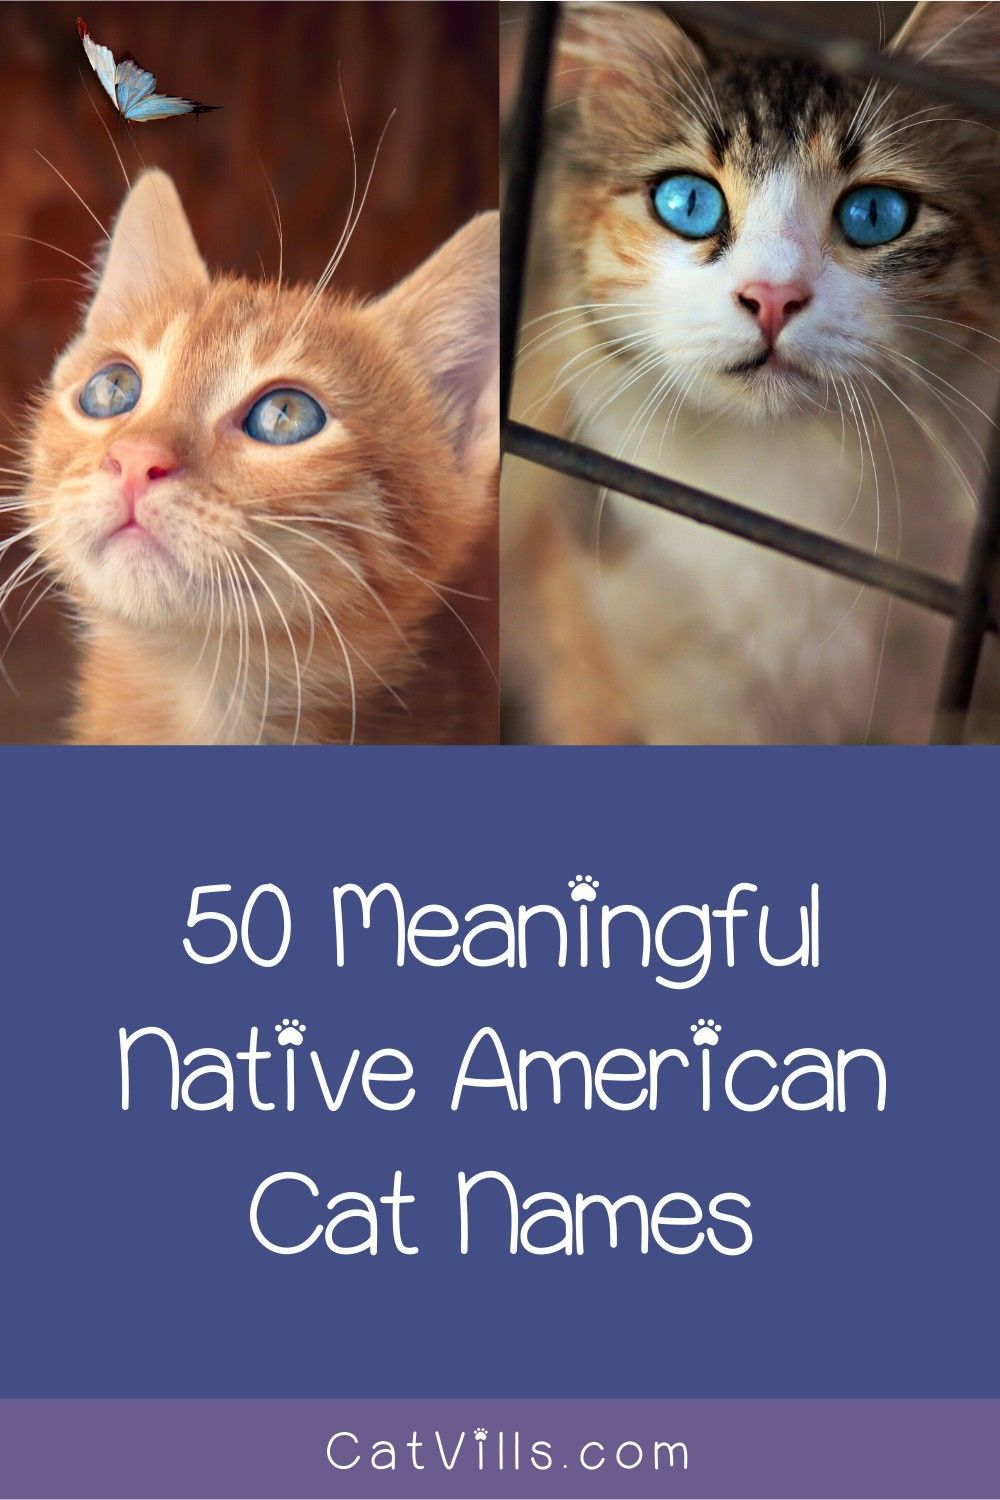 Native American Cat Names To Honor